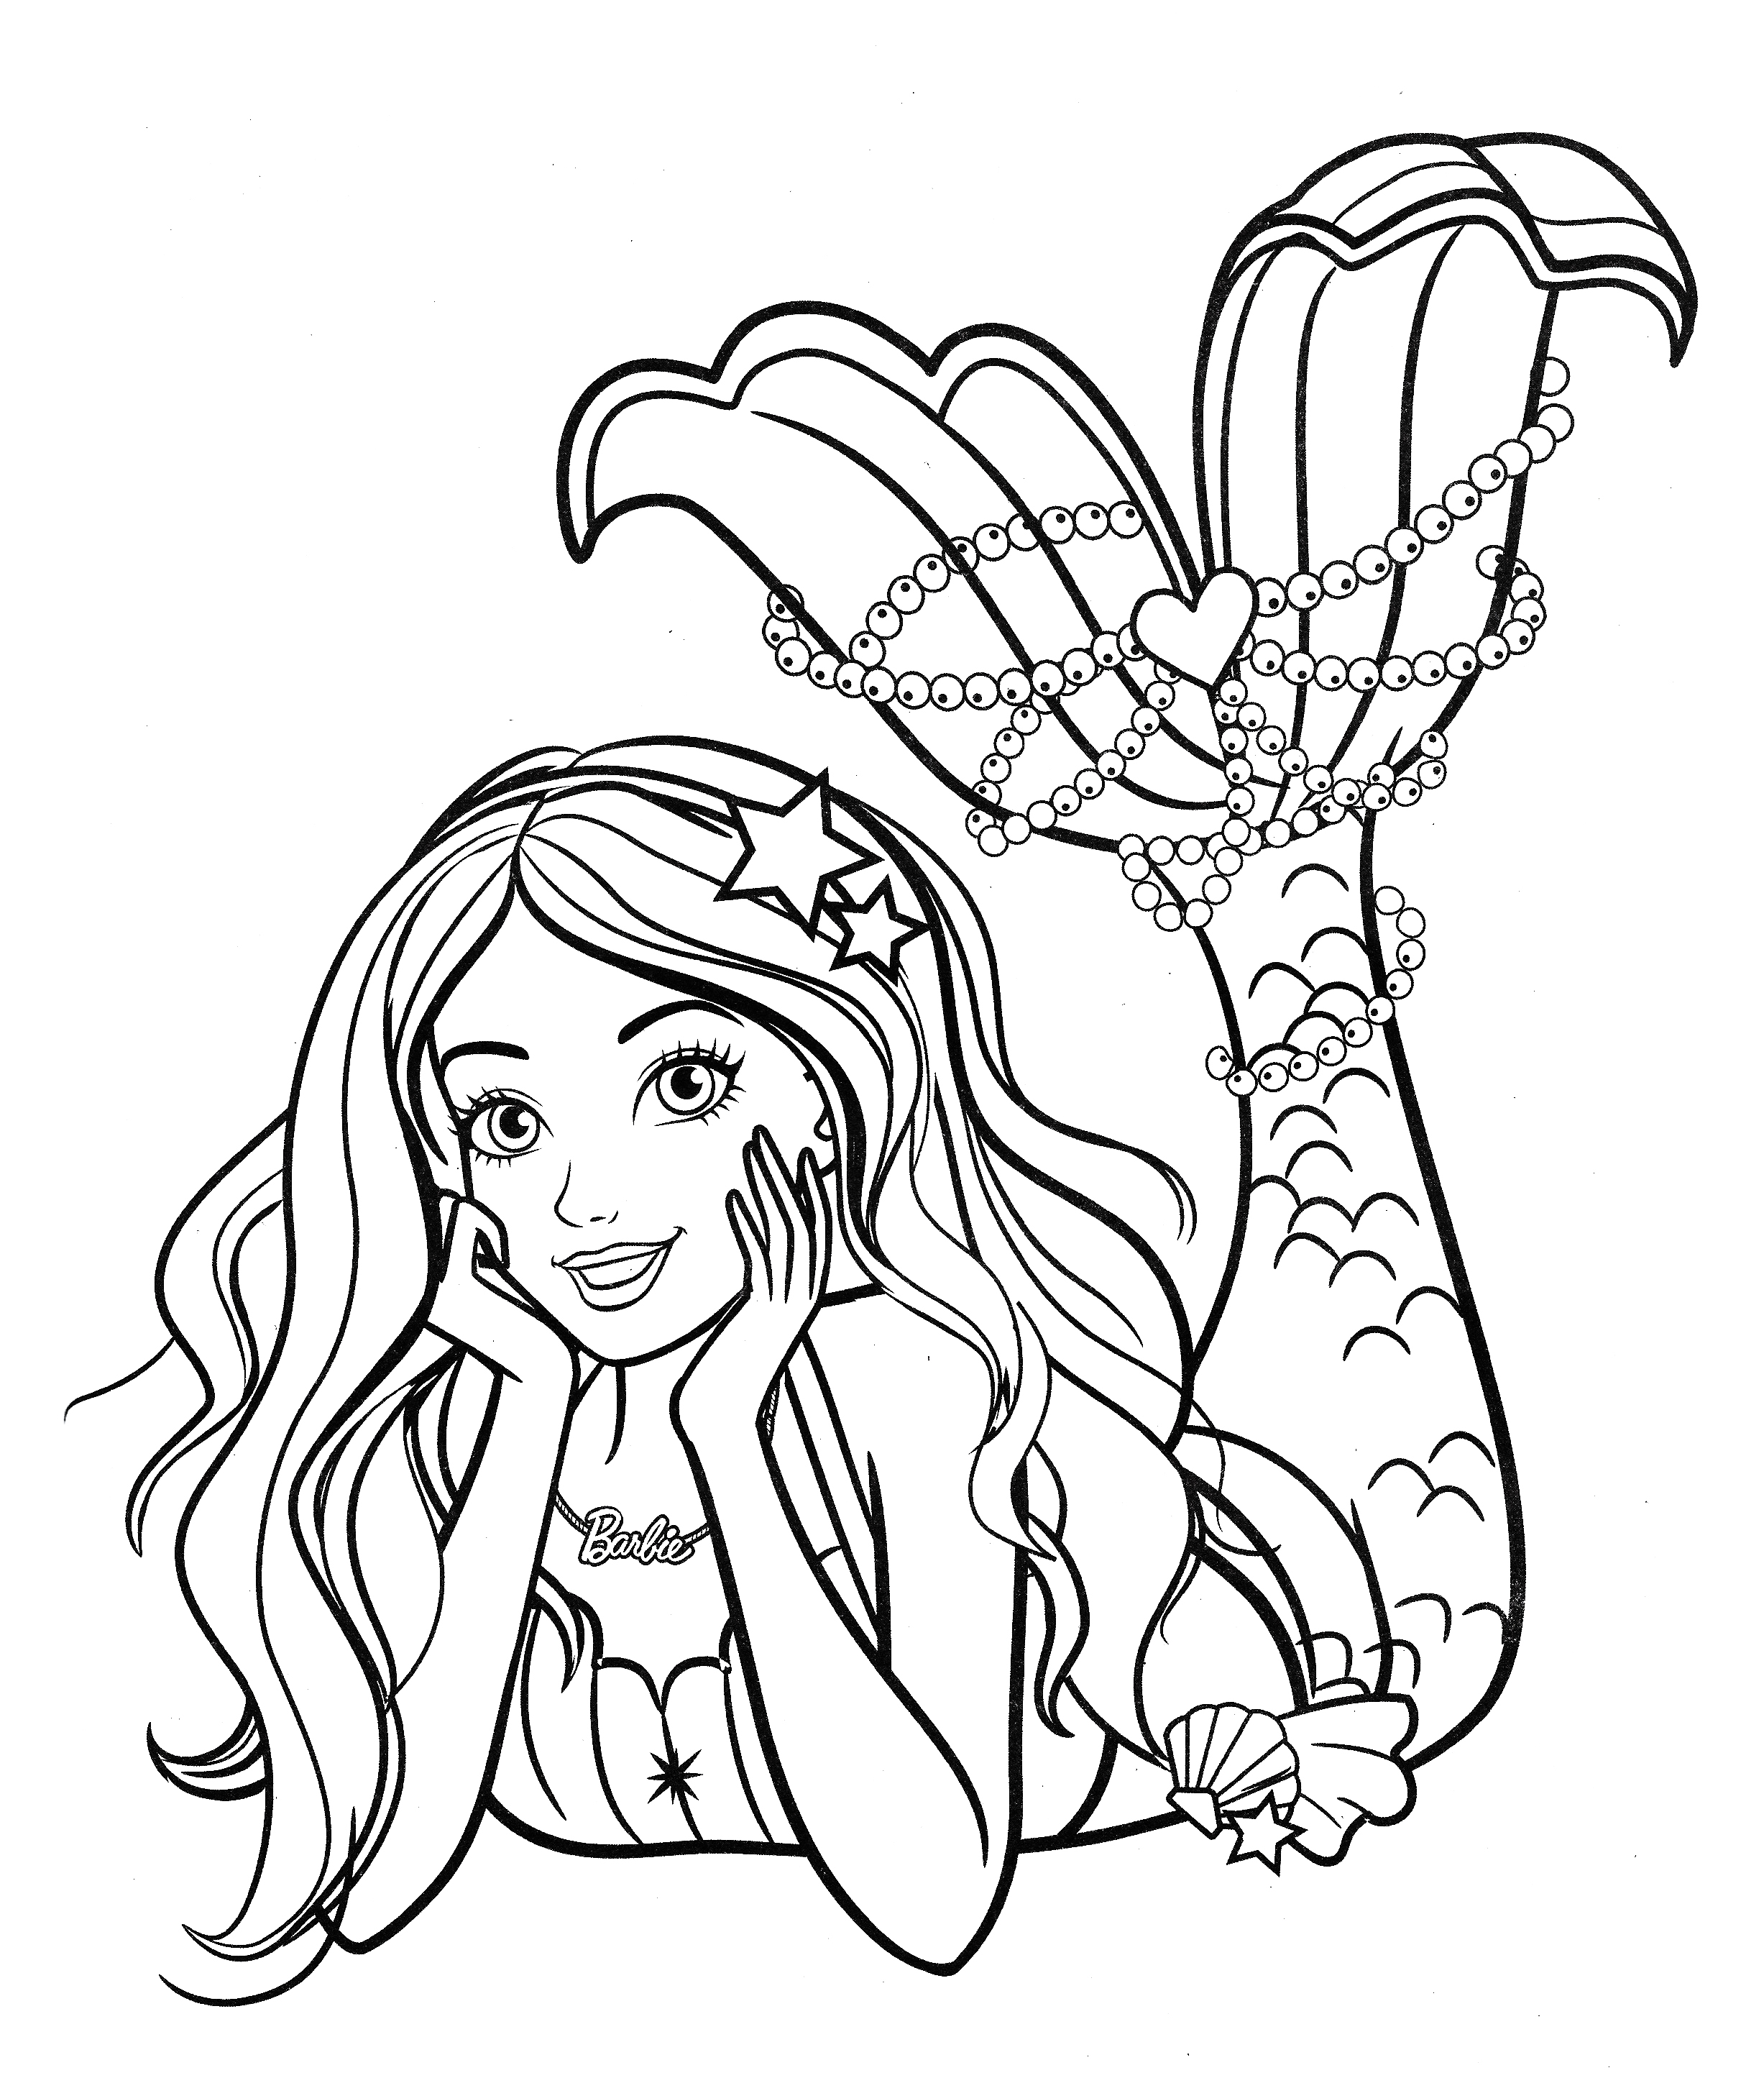 barbie coloring pages coloring pages barbie free printable coloring pages pages barbie coloring